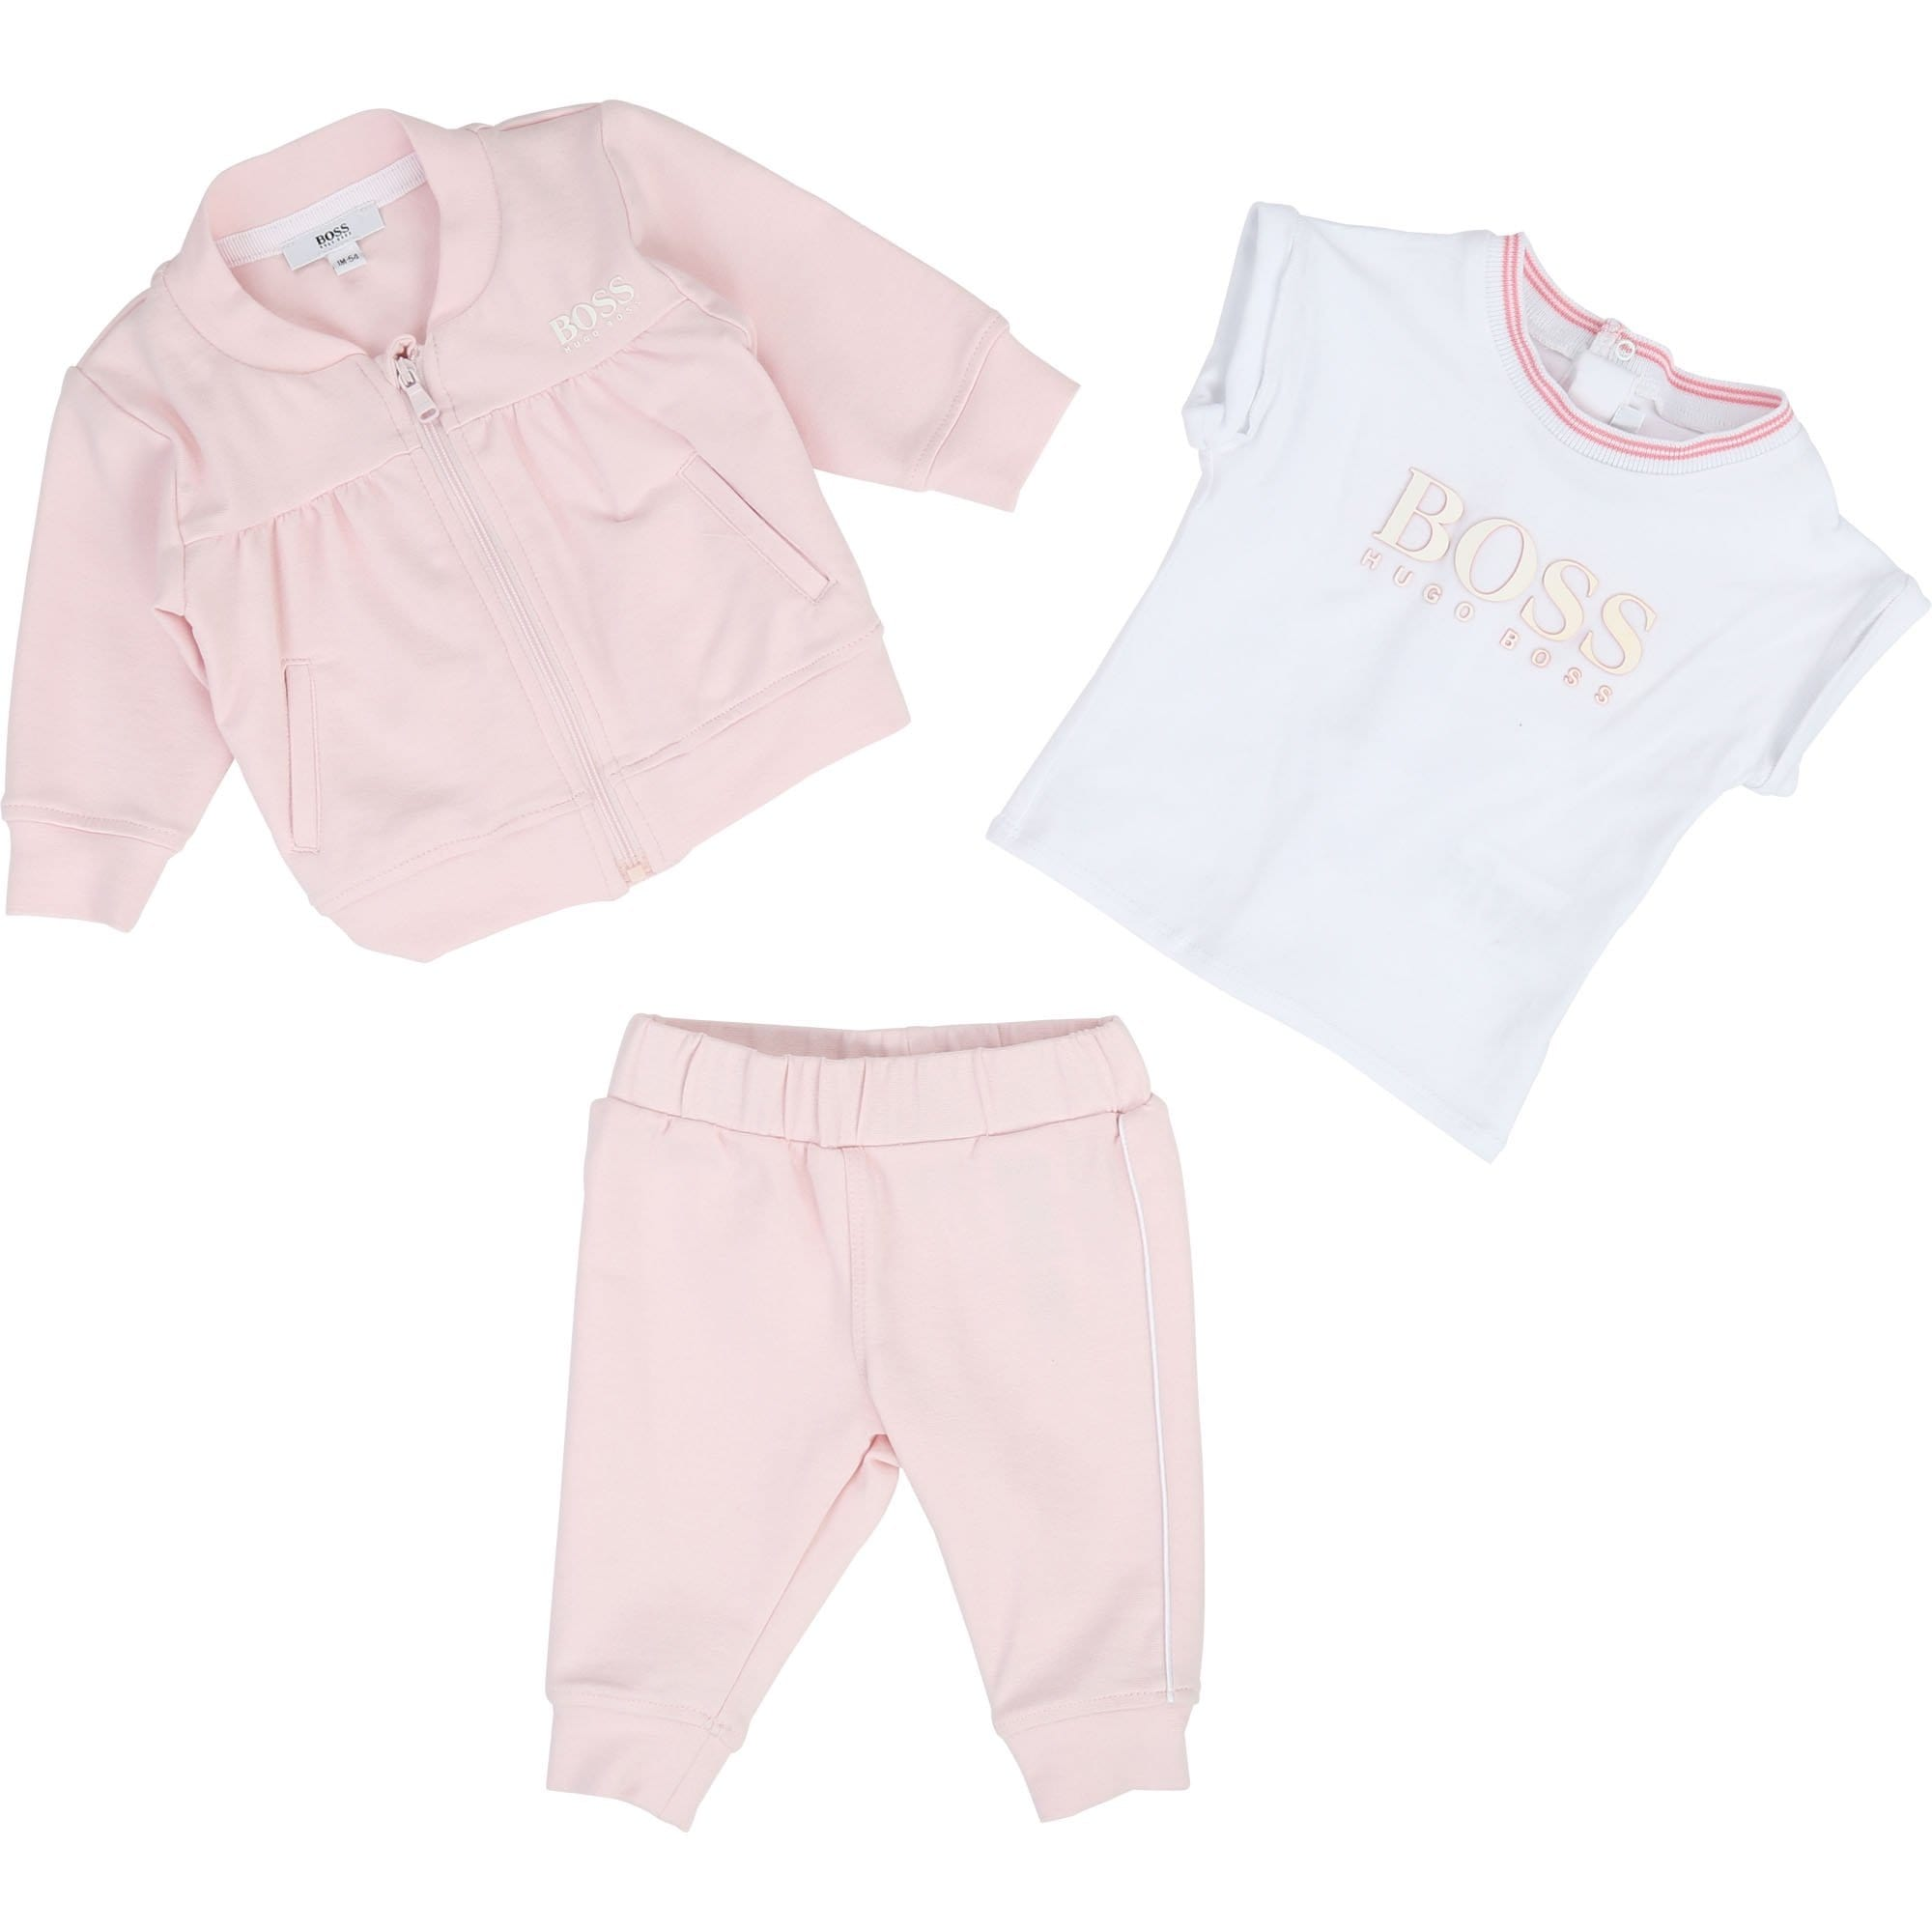 Hugo Boss Baby Tracksuit Set Pink